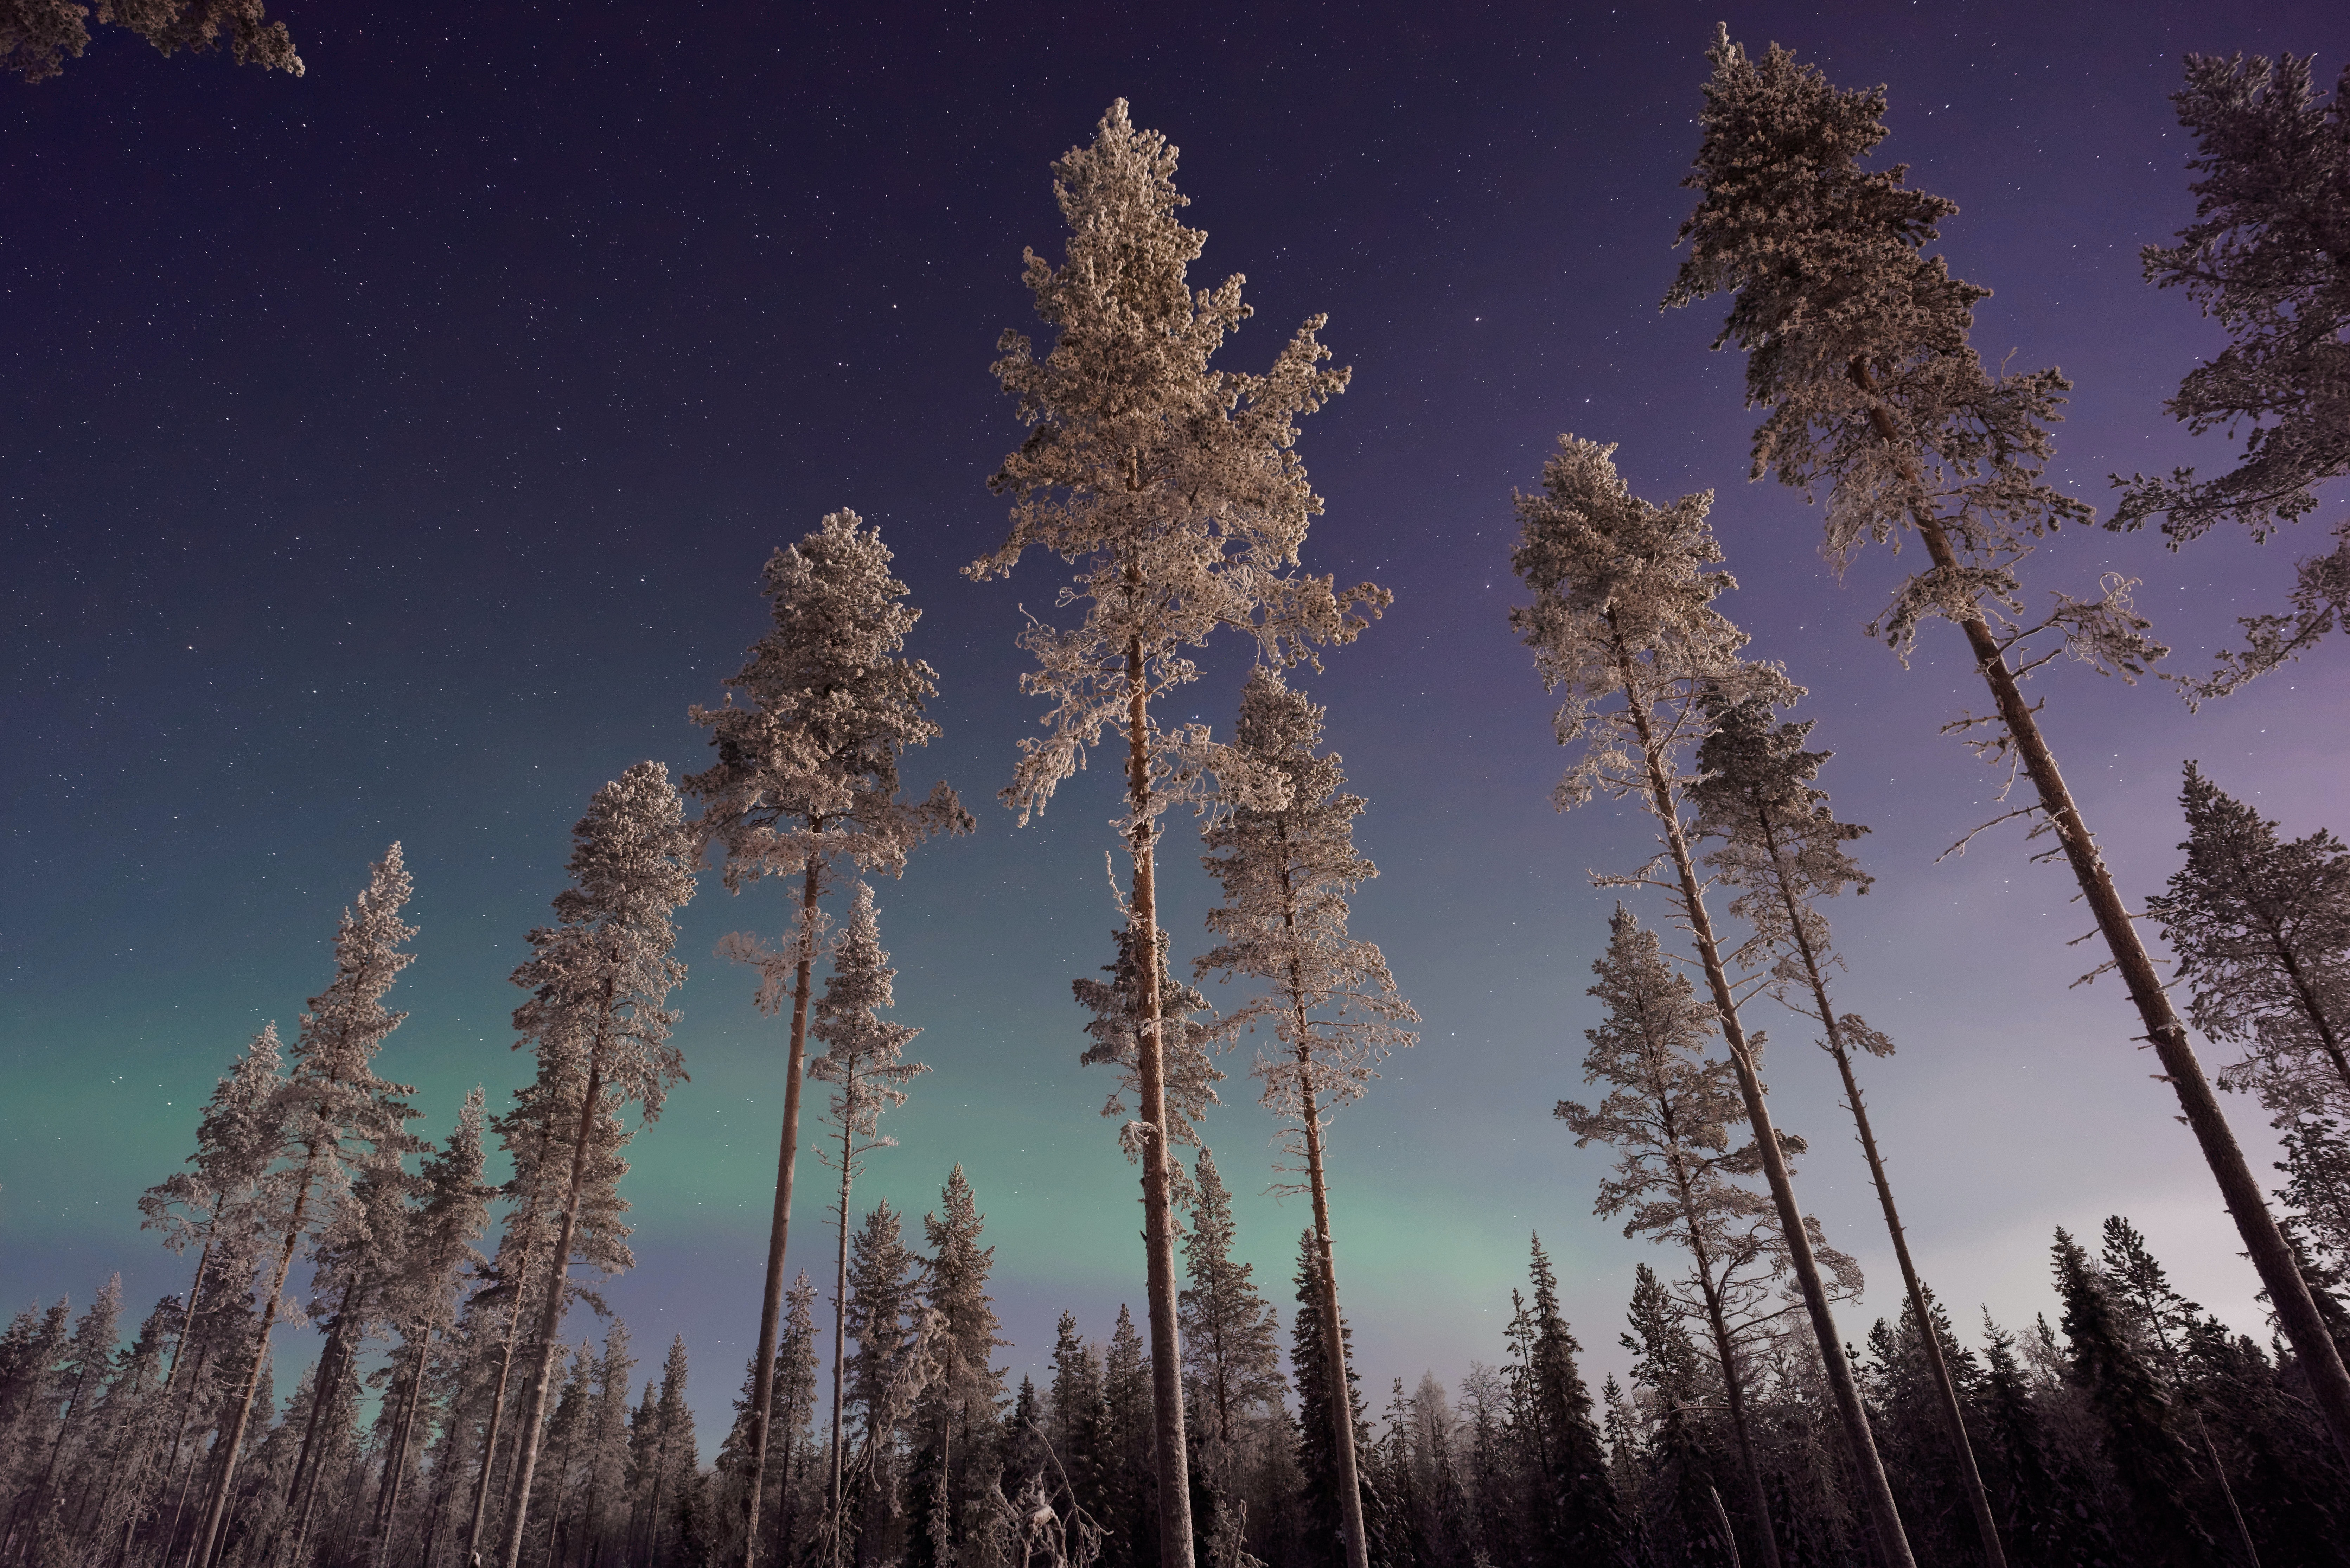 Snowy pines against a night sky with northern lights in Lapland